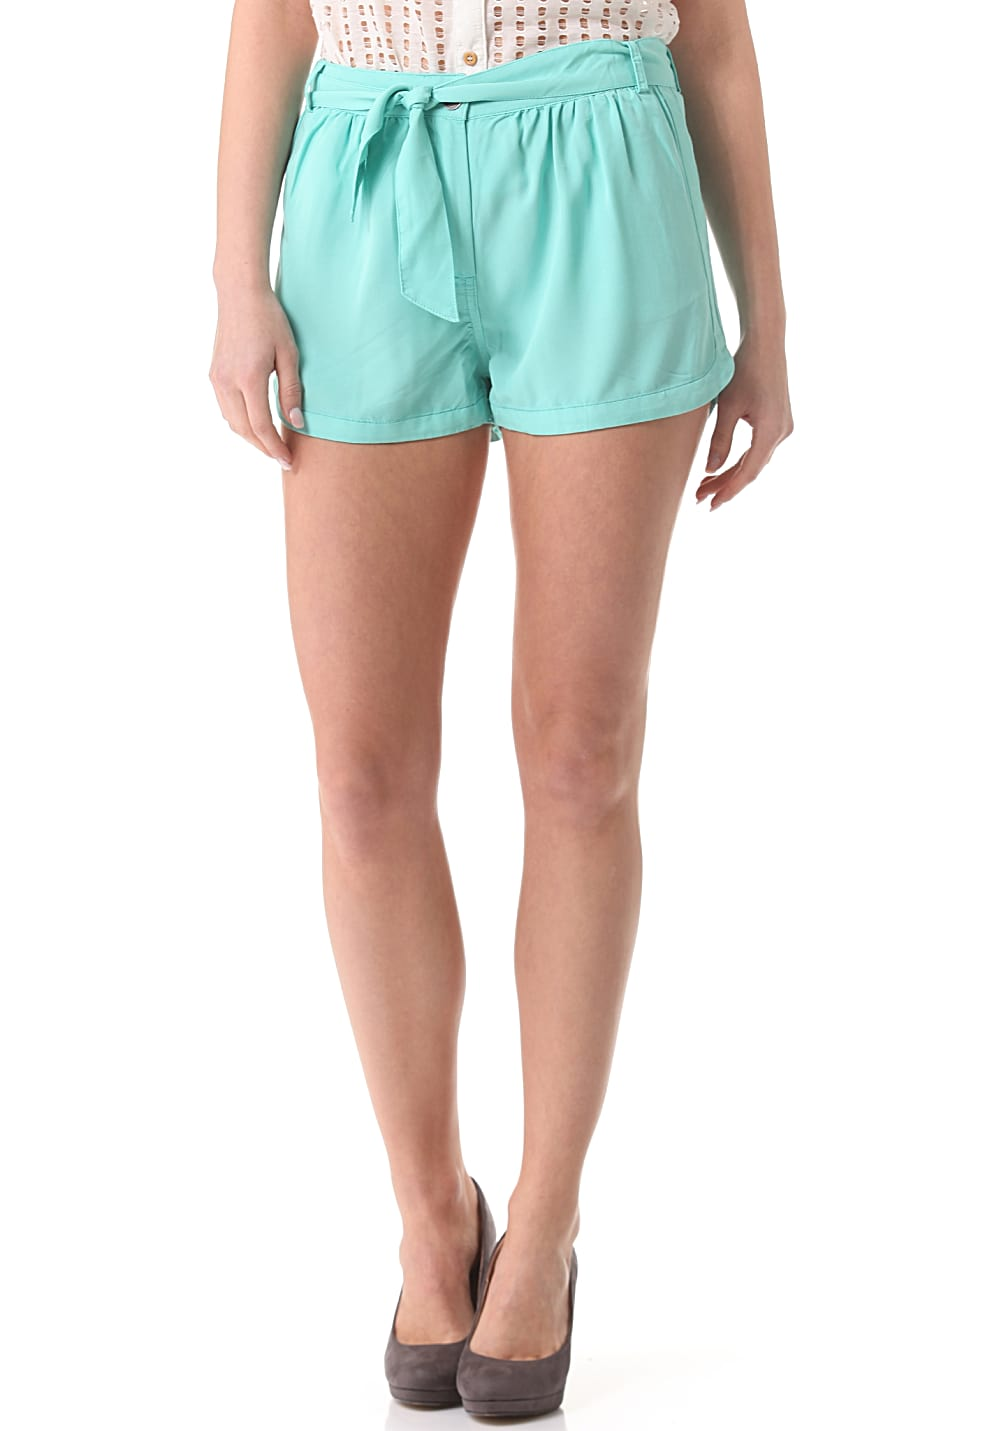 Minimum Playa - Shorts für Damen - Blau - 36/XX